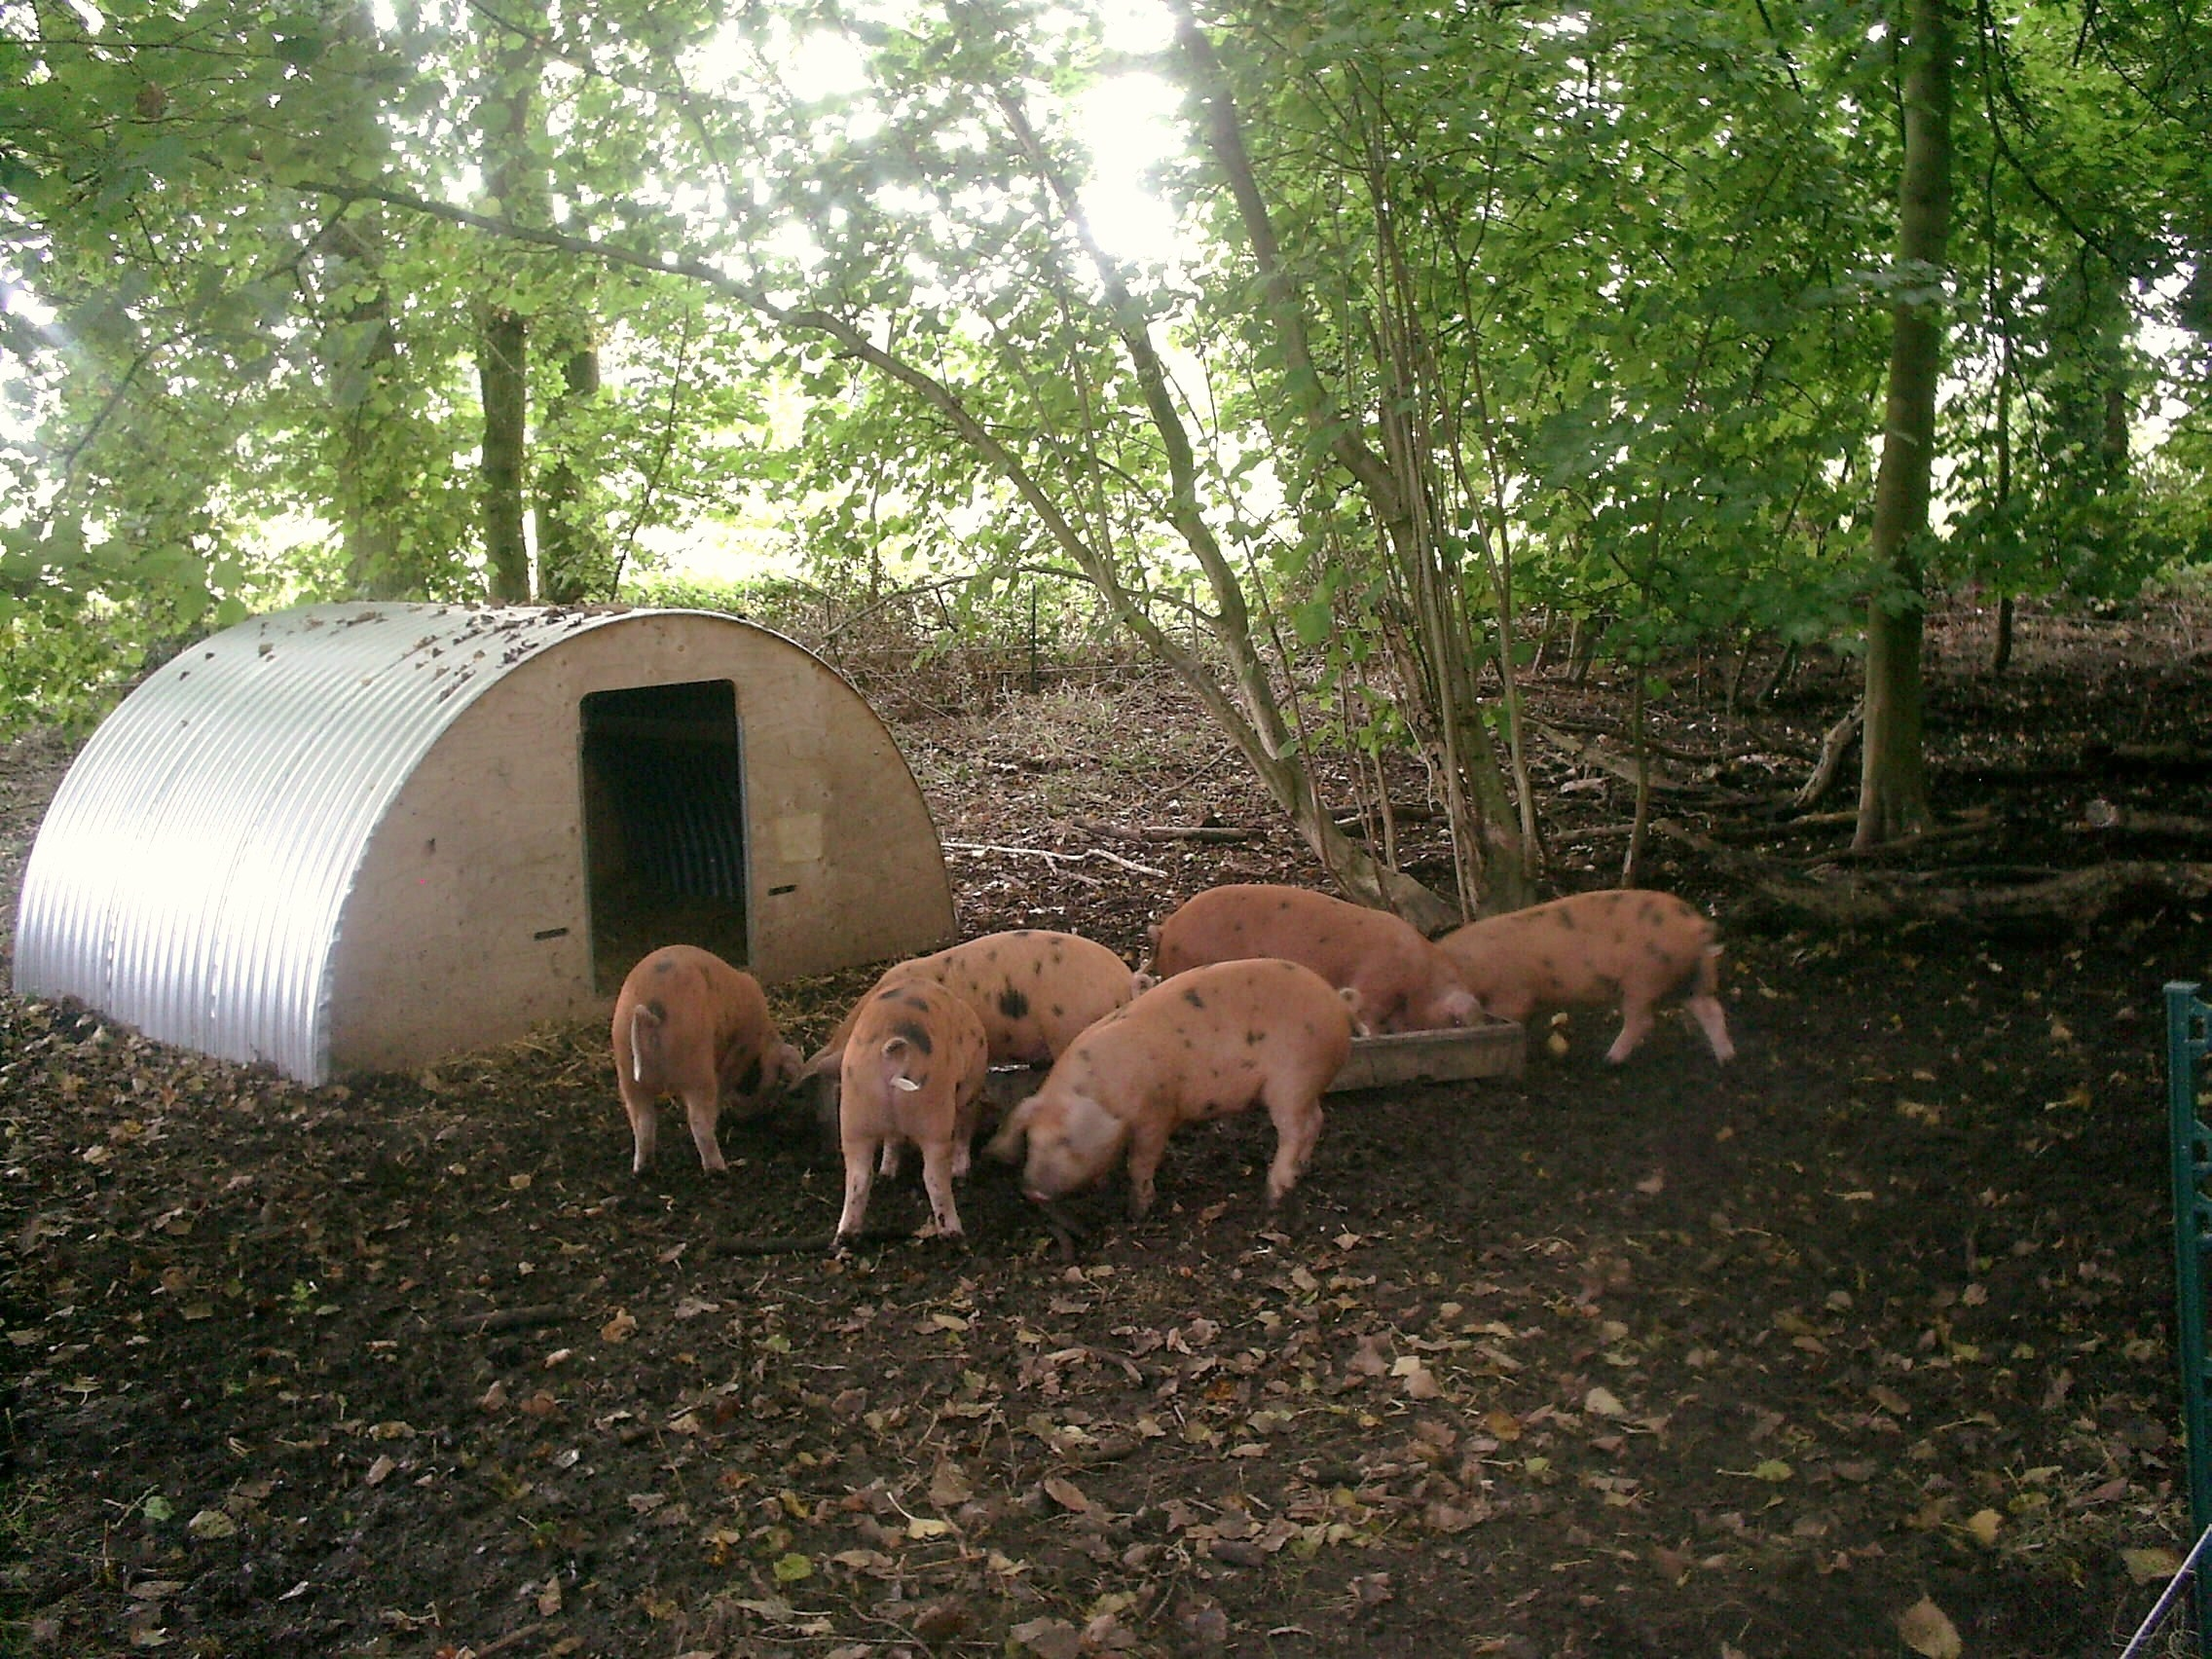 pigs at Coopers farm